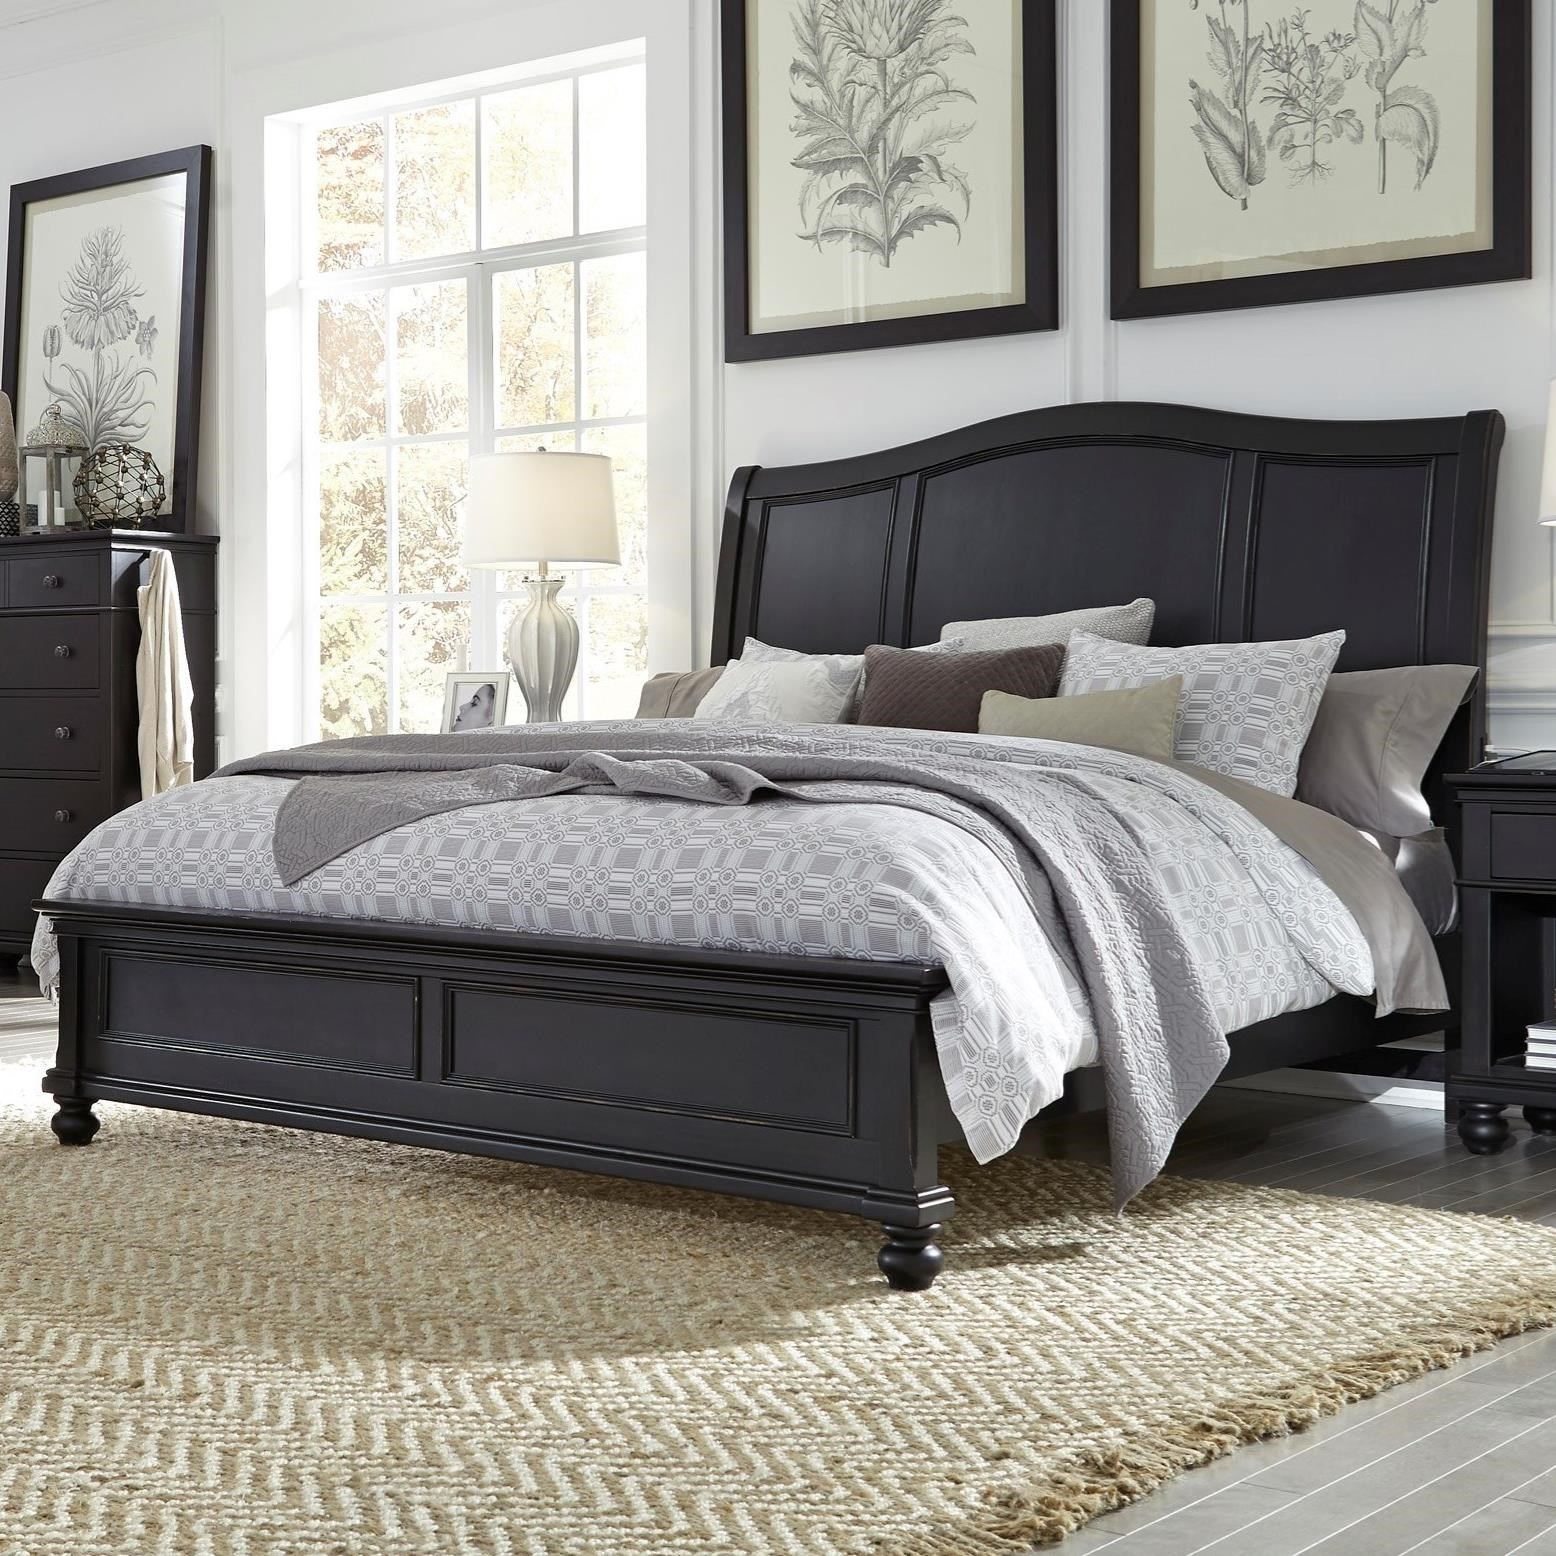 Oxford California King Sleigh Bed by Aspenhome at Walker's Furniture